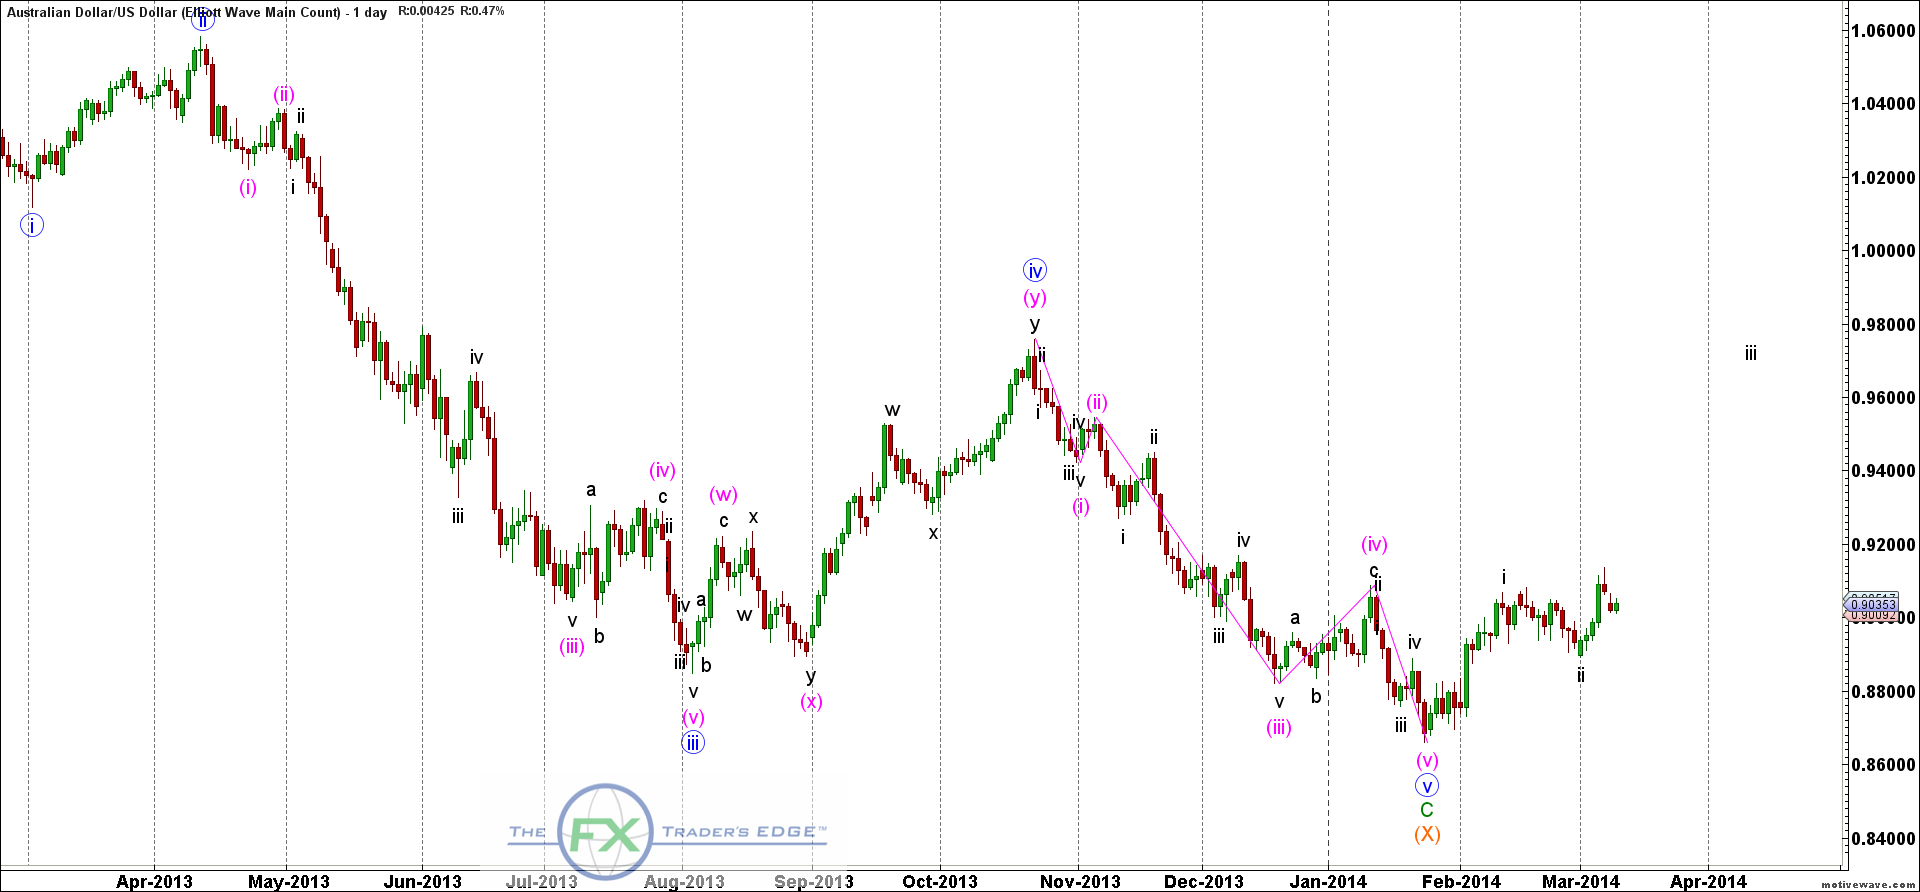 AUDUSD-Elliott-Wave-Main-Count-Mar-11-0818-AM-1-day